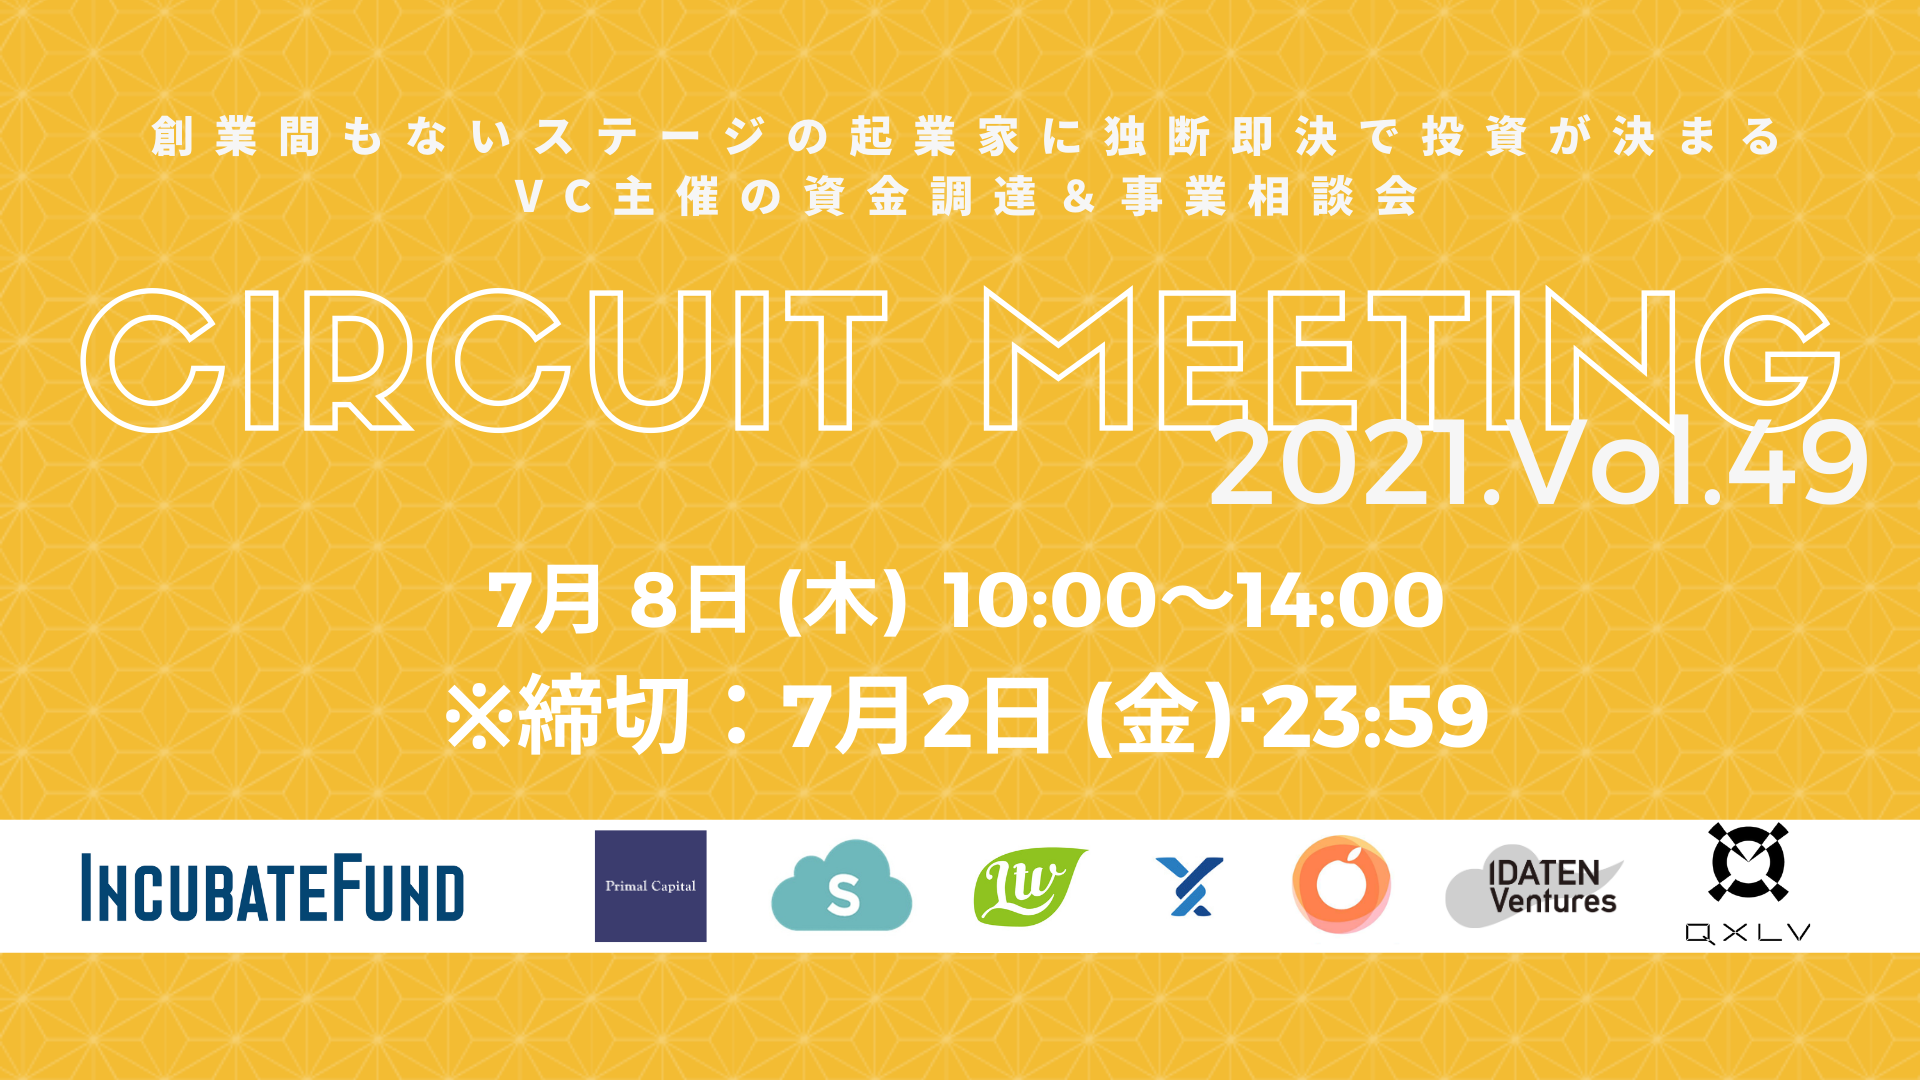 【7/2締切】Circuit Meeting Vol.49